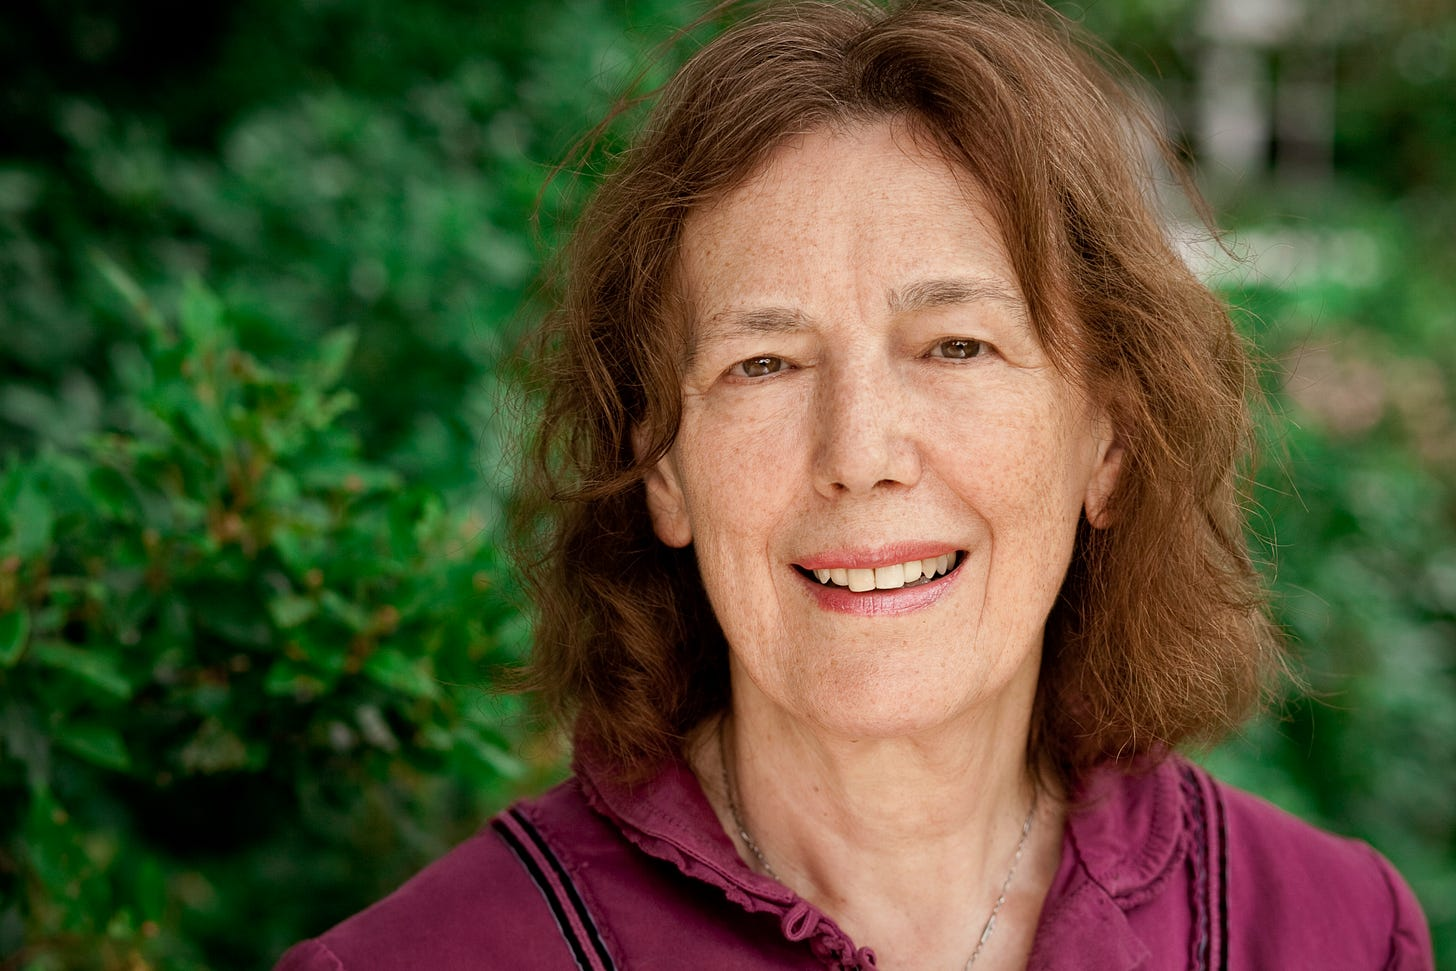 Writer Claire Tomalin is the author of the beloved biography Jane Austen: A Life. She spoke with us from her home in the UK. | Photo: Angus Muir